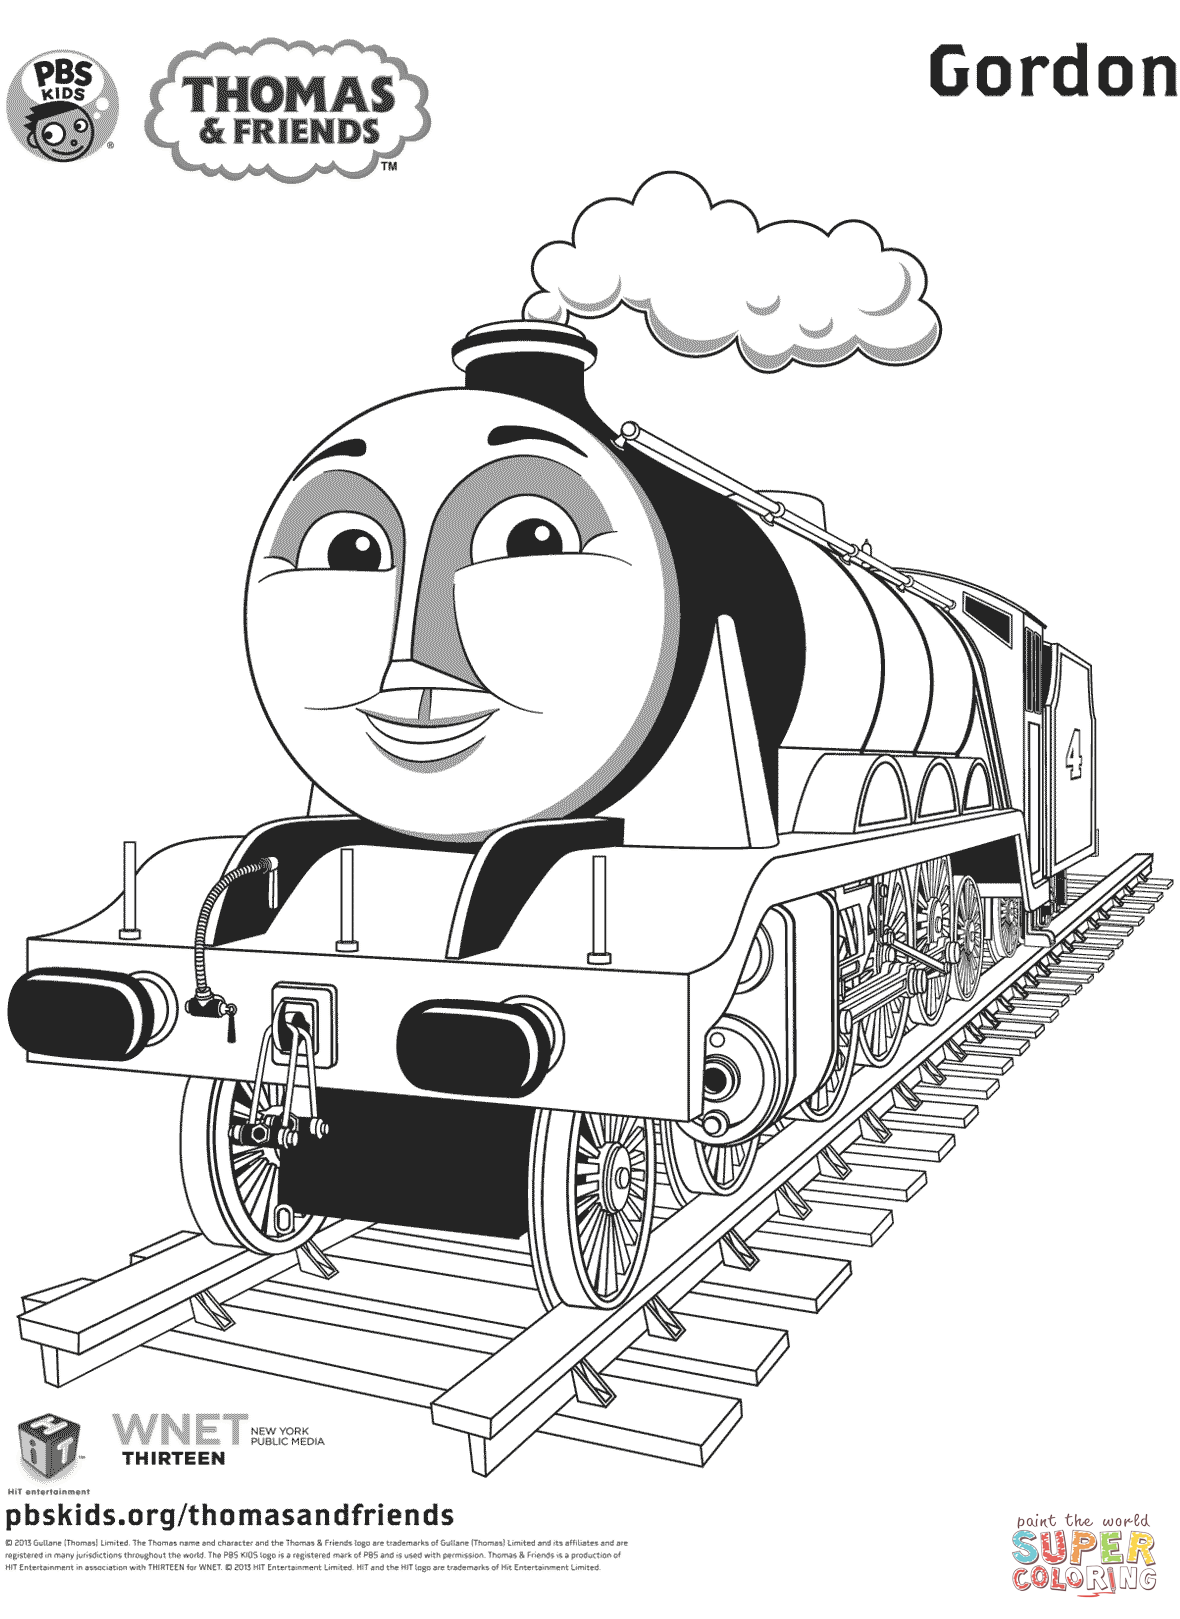 thomas and his friends coloring pages thomas and friends coloring pages coloring pages to thomas coloring pages and his friends